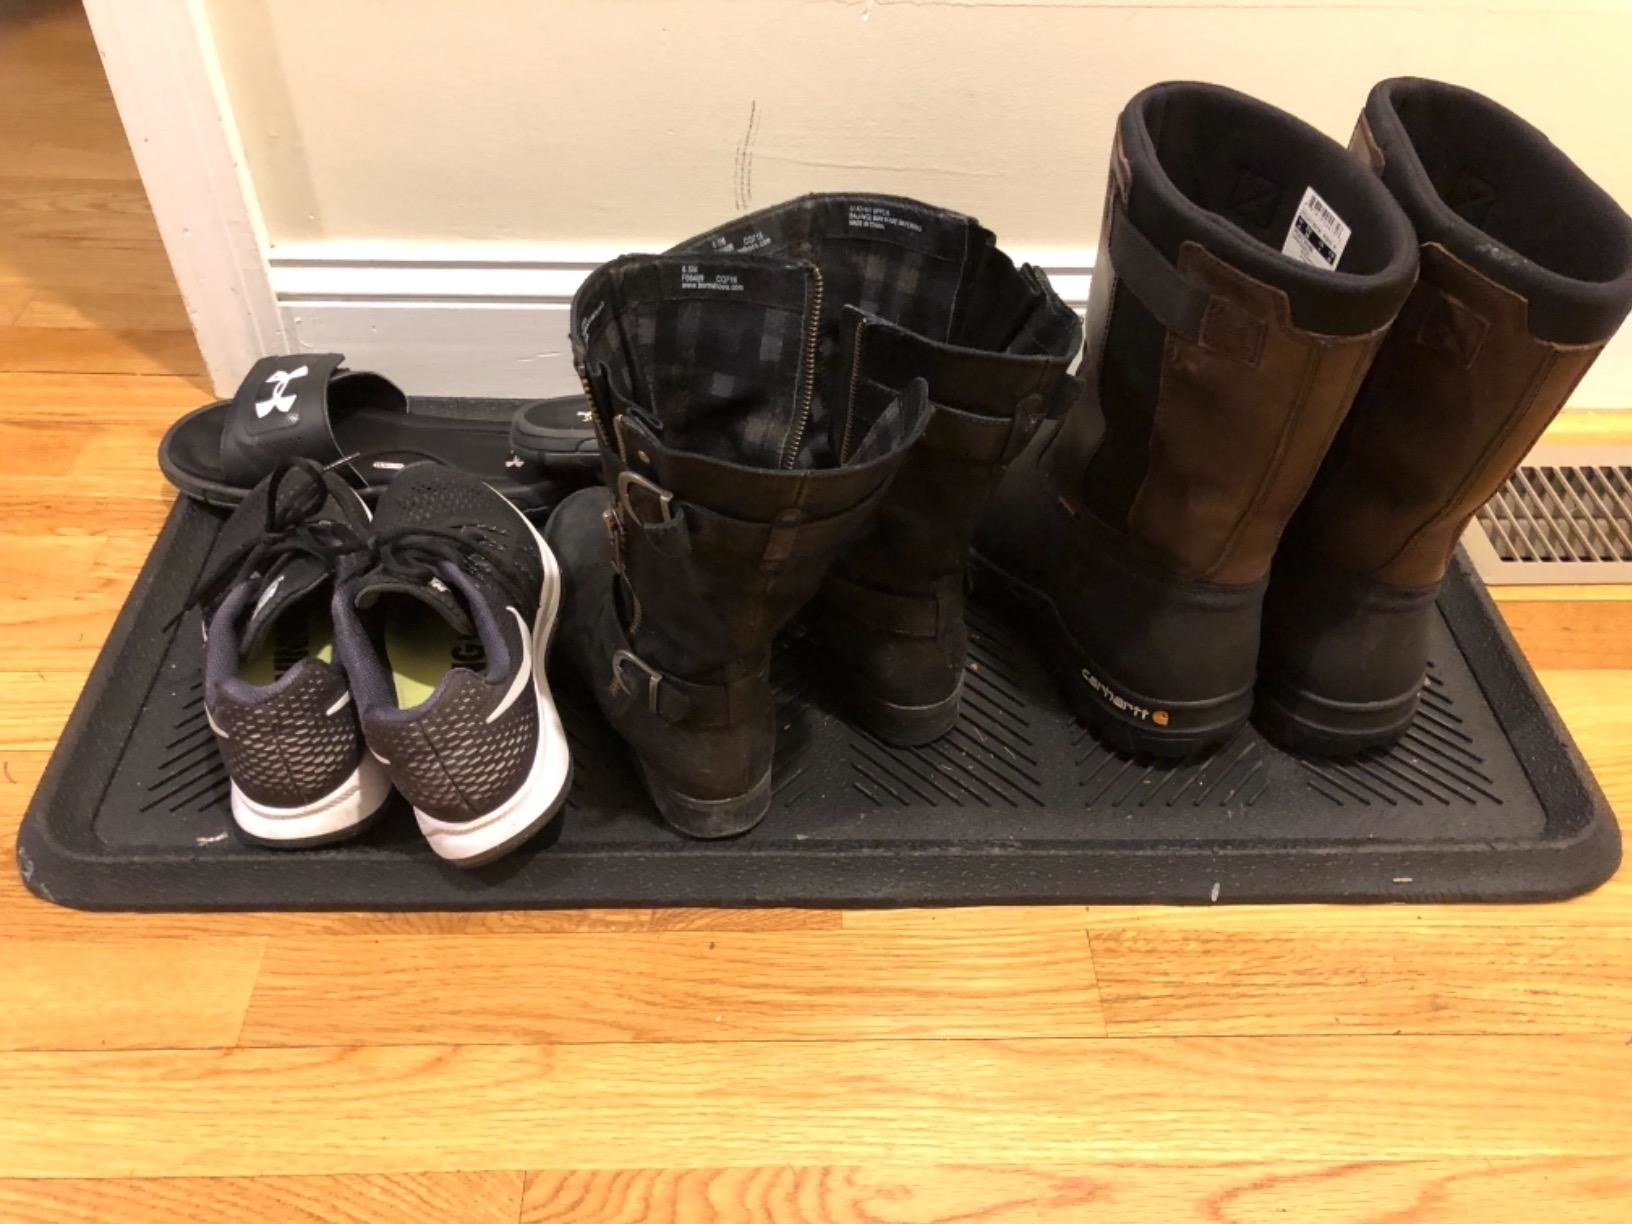 reviewer's four pairs of shoes on the rubber mat